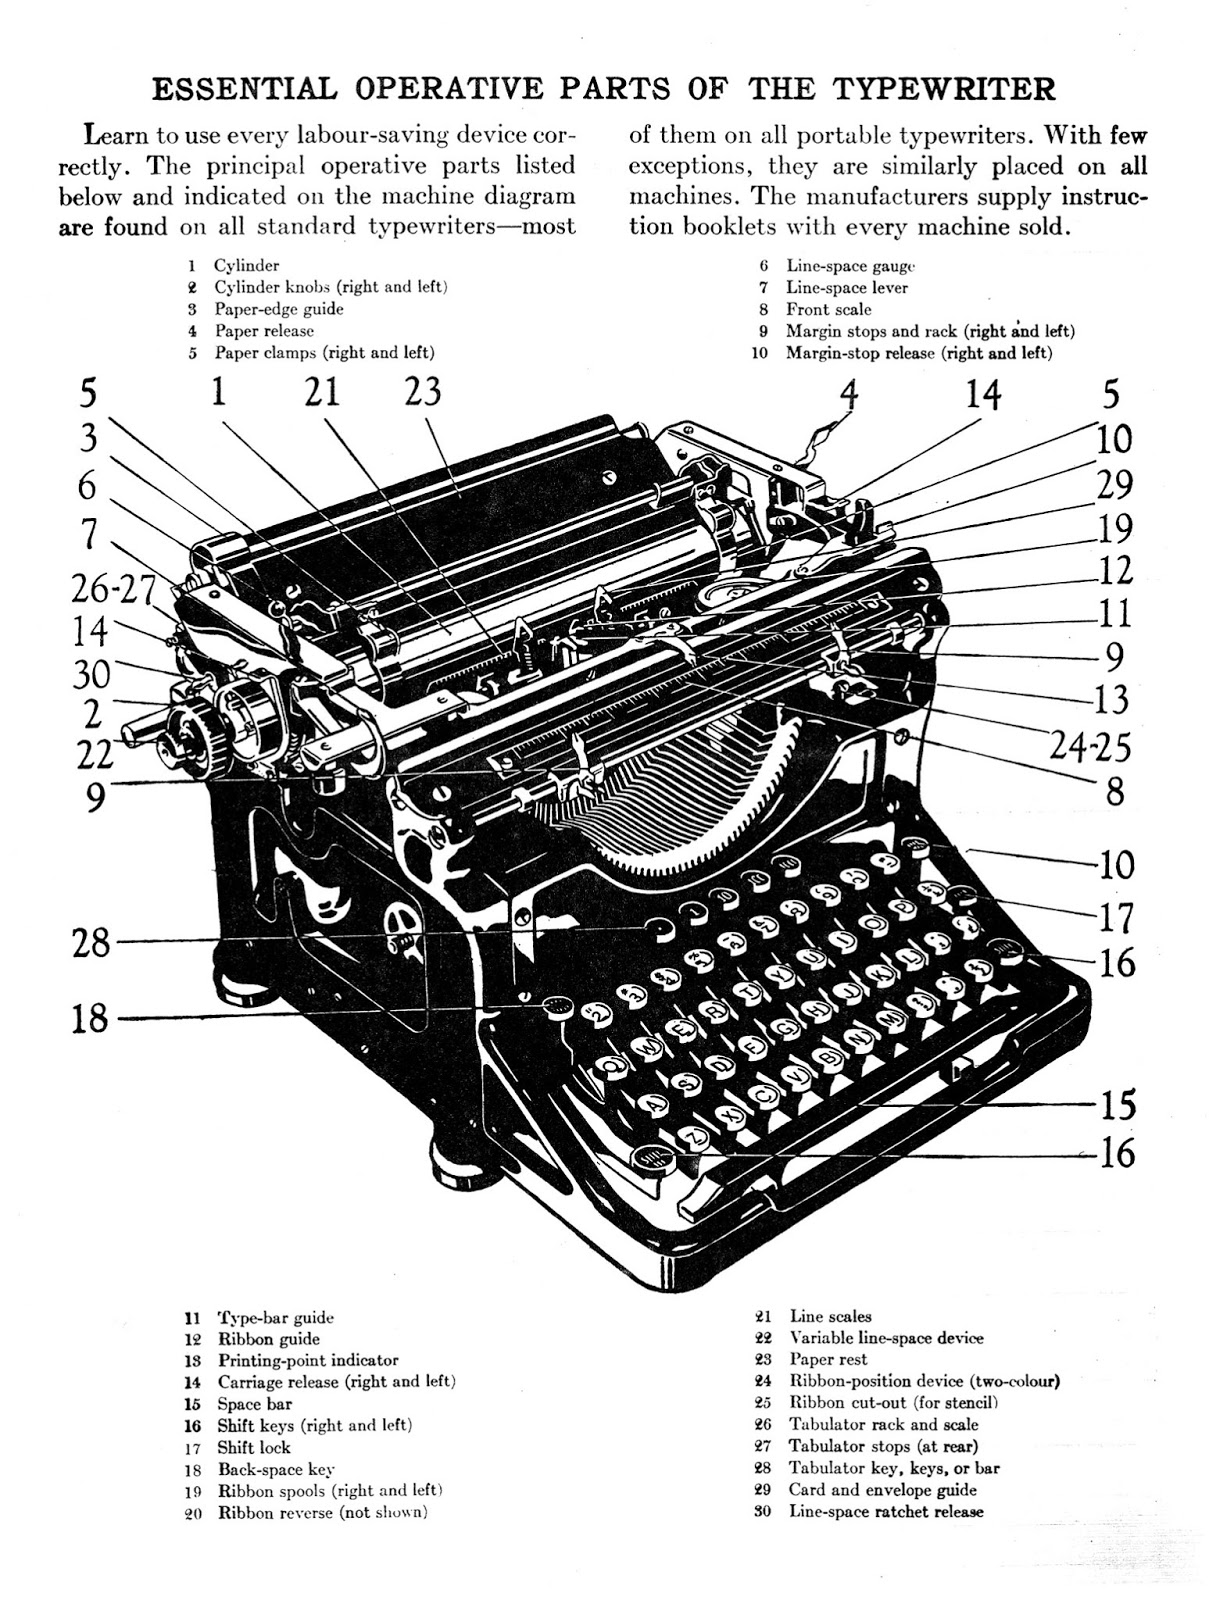 Parts of a Typewriter and Their Meaning